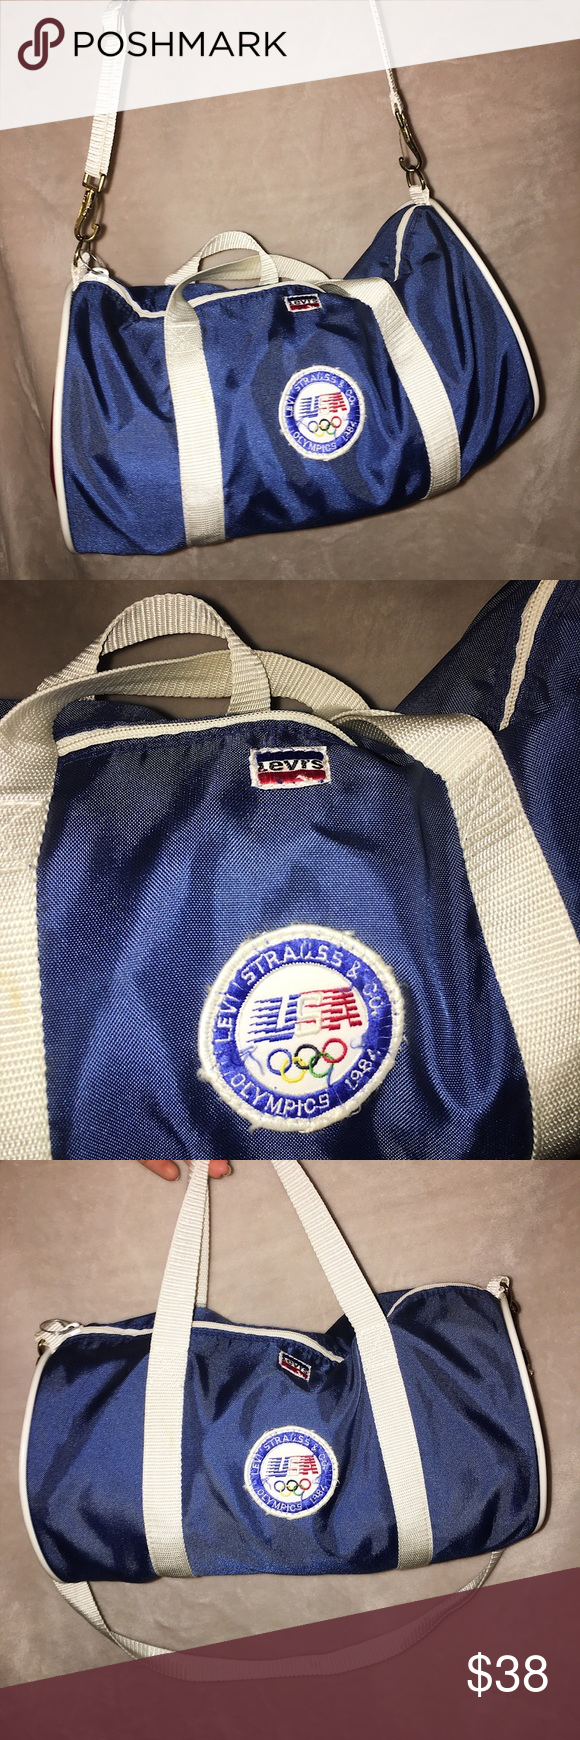 Vintage 1984 Team USA Olympics Duffle Bag! INSANE VINTAGE FIND 226bf5529b612